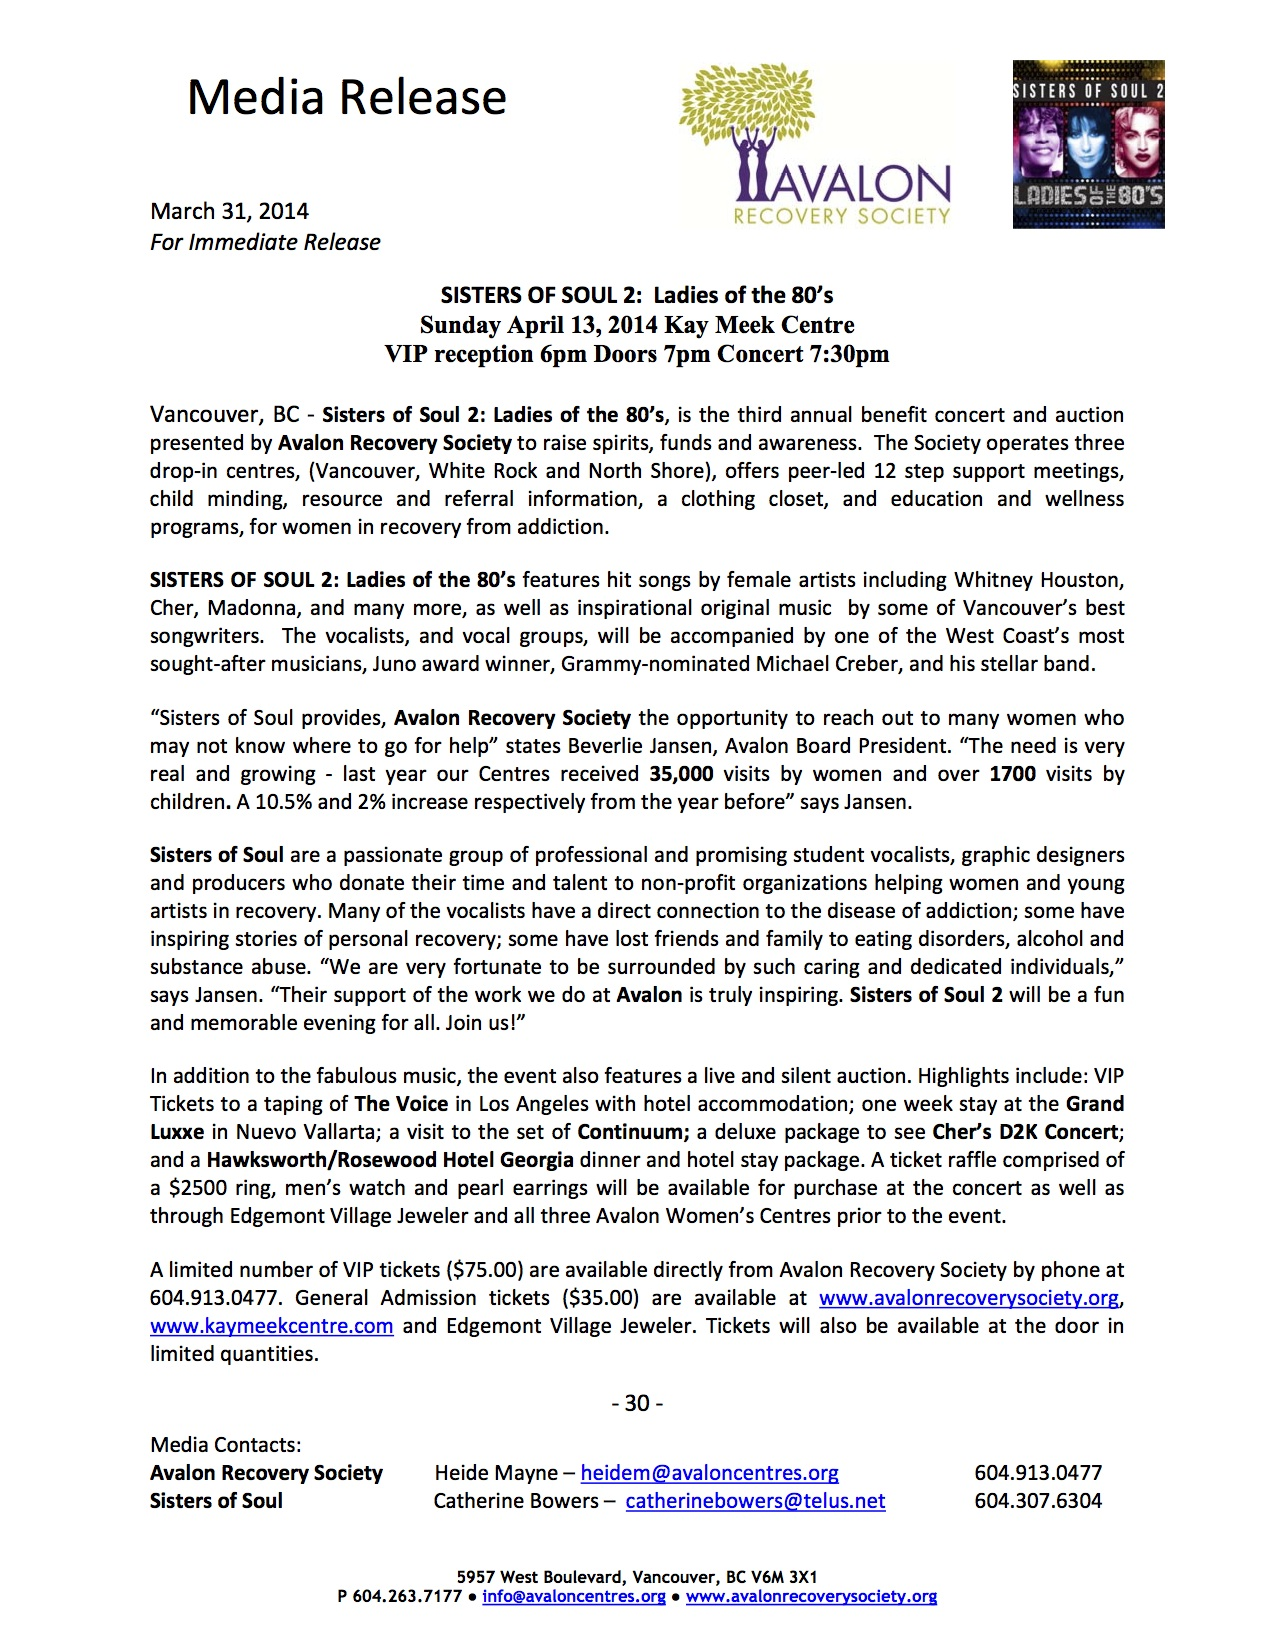 PRESS RELEASE: SISTERS OF SOUL2: Ladies Of The 80's Benefit Concert & Auction For The Avalon Recovery Society